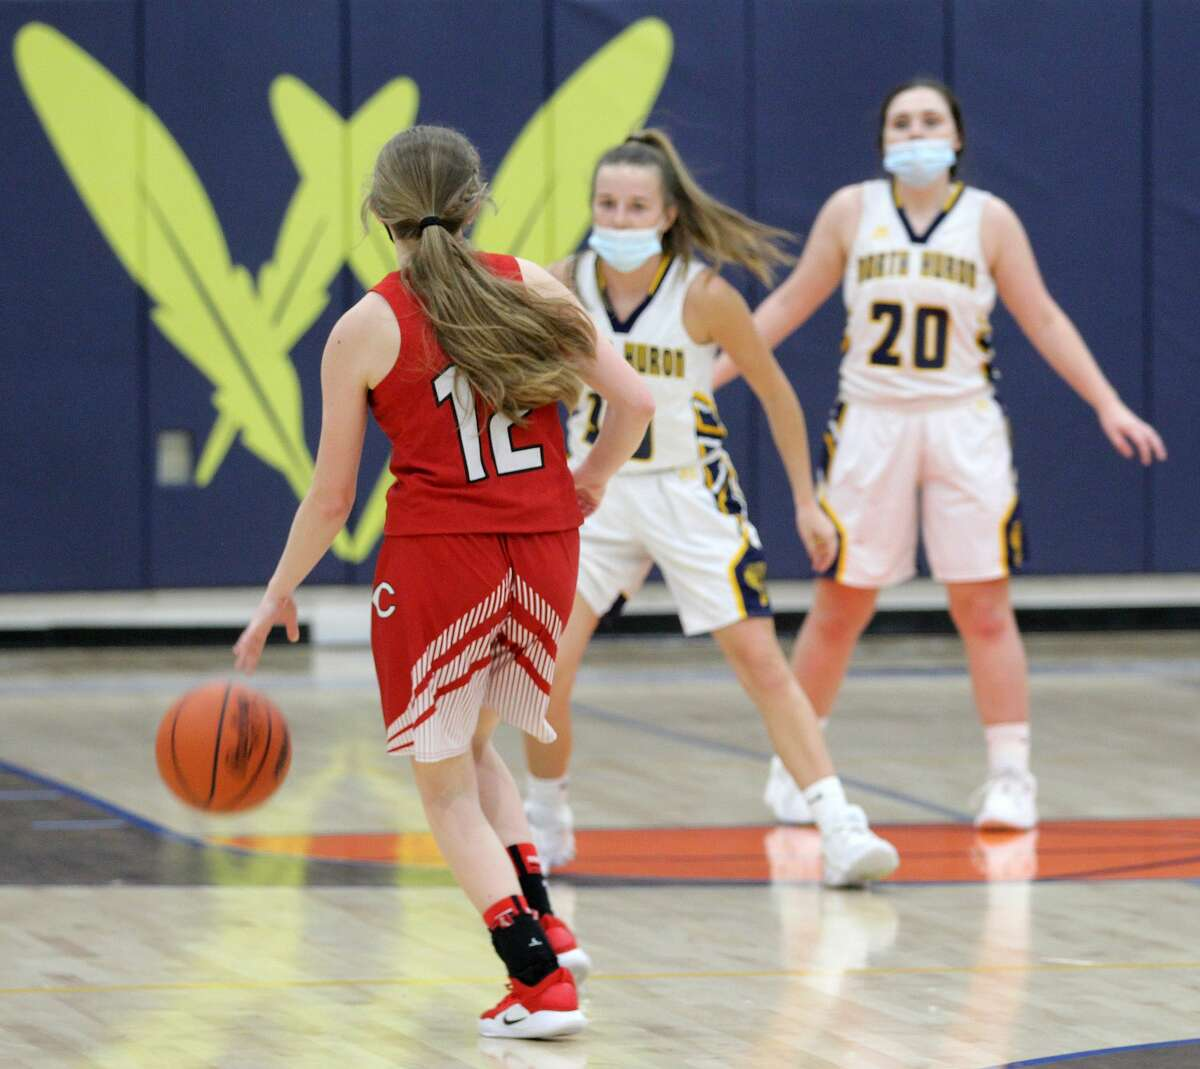 The North Huron girls basketball team outlasted visiting Caseville on Tuesday night for a 41-25 victory to remain unbeaten.